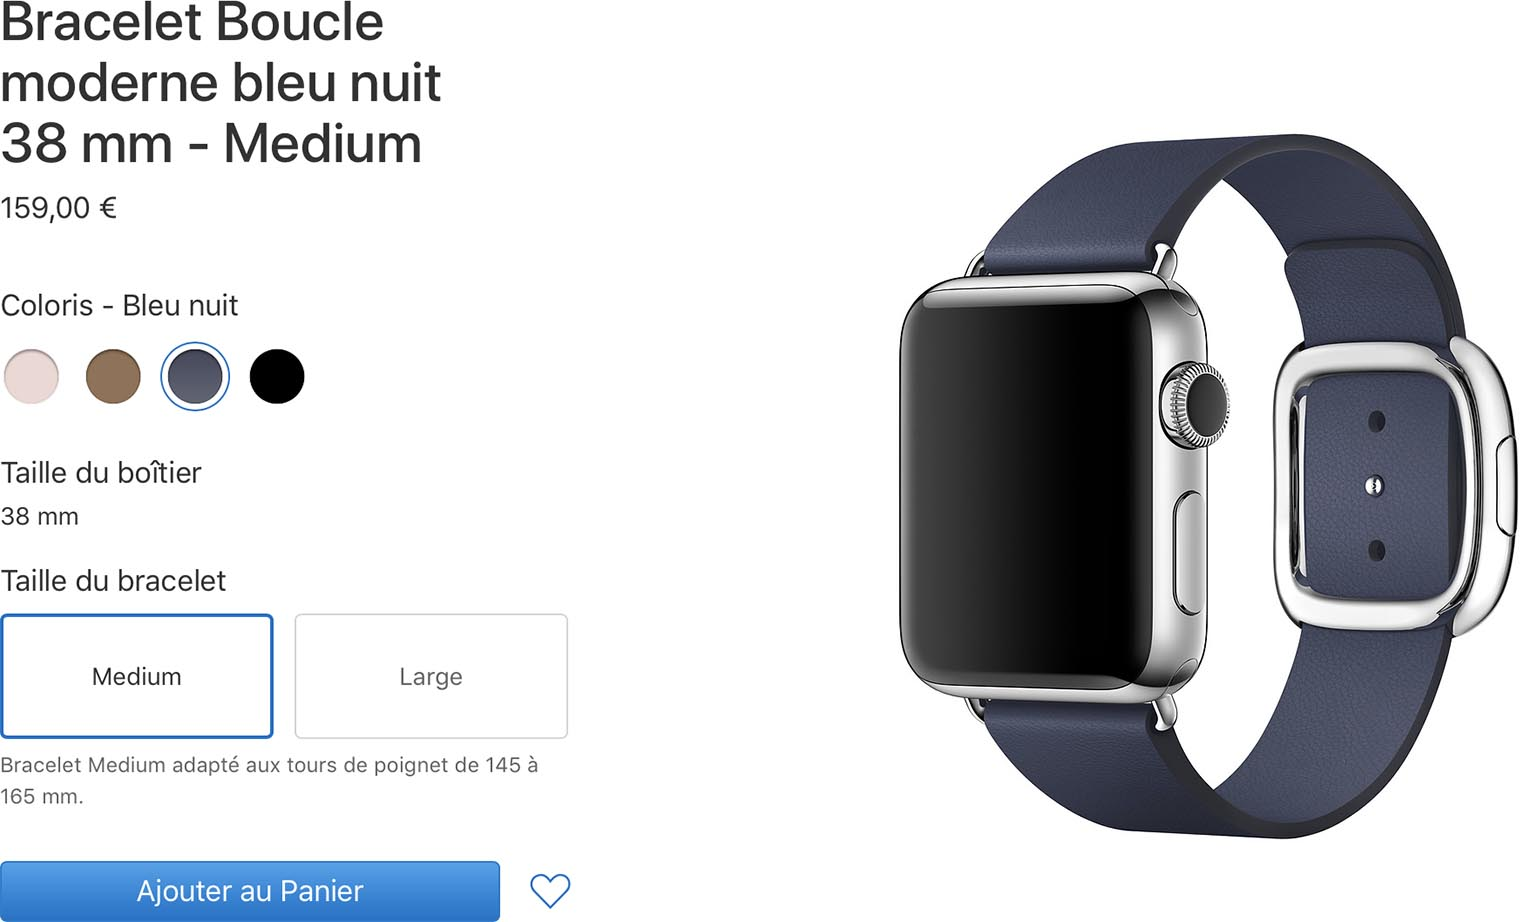 Apple Watch bracelet boucle moderne